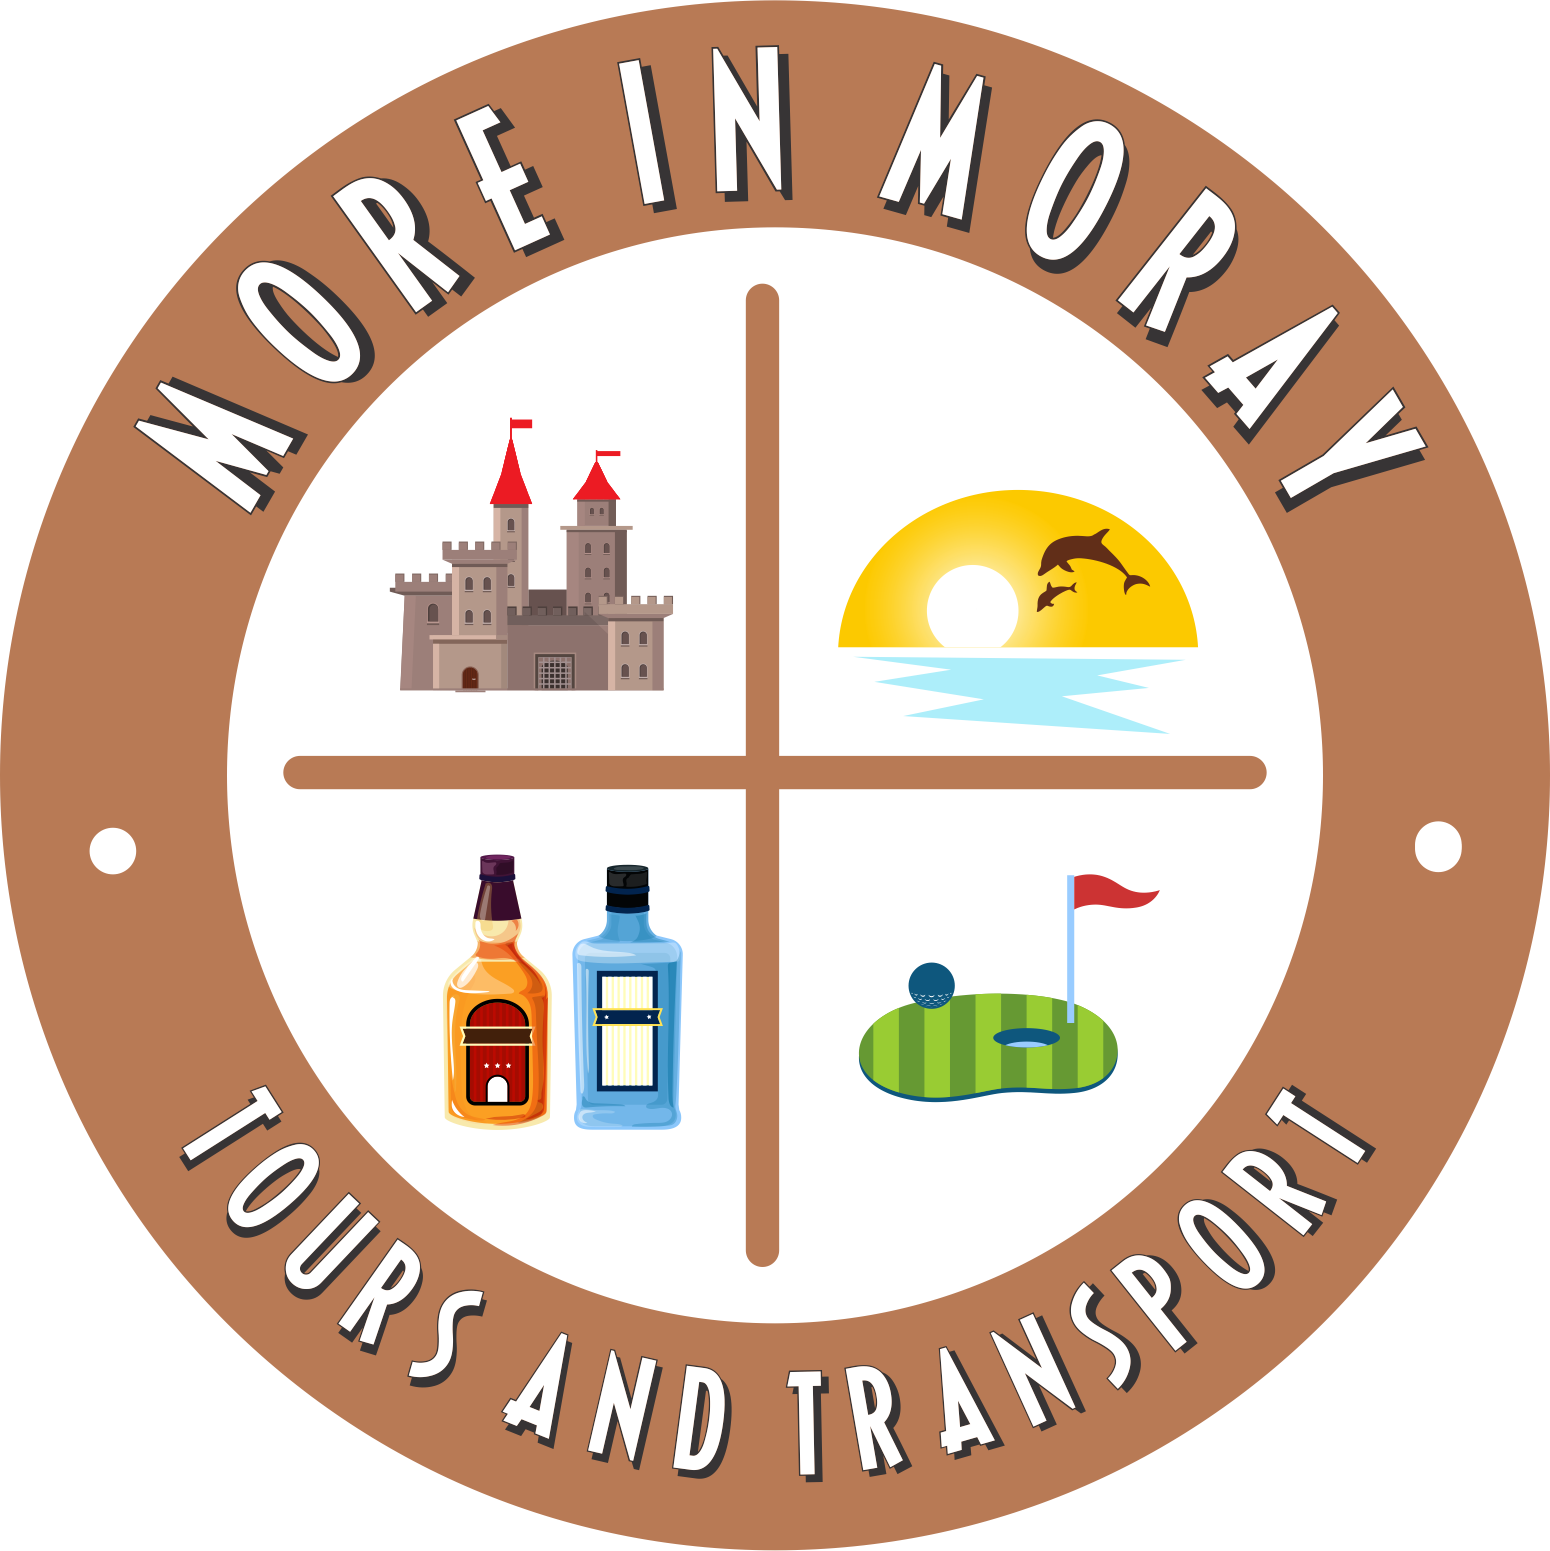 More in Moray Tours and Transport | Cookies - More in Moray Tours and Transport